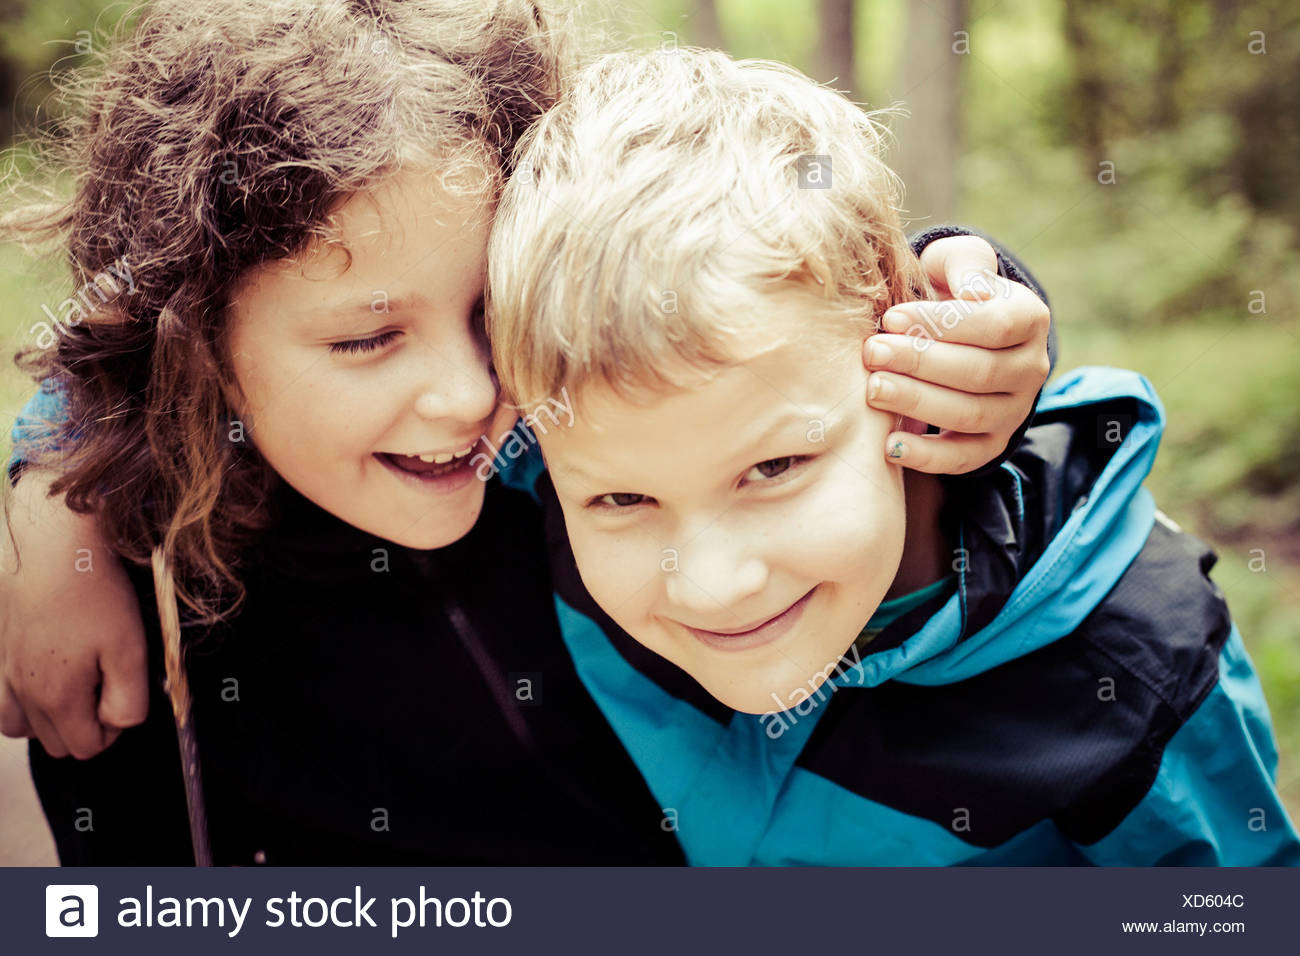 Young girl whispering into brother's ear outdoors - Stock Image